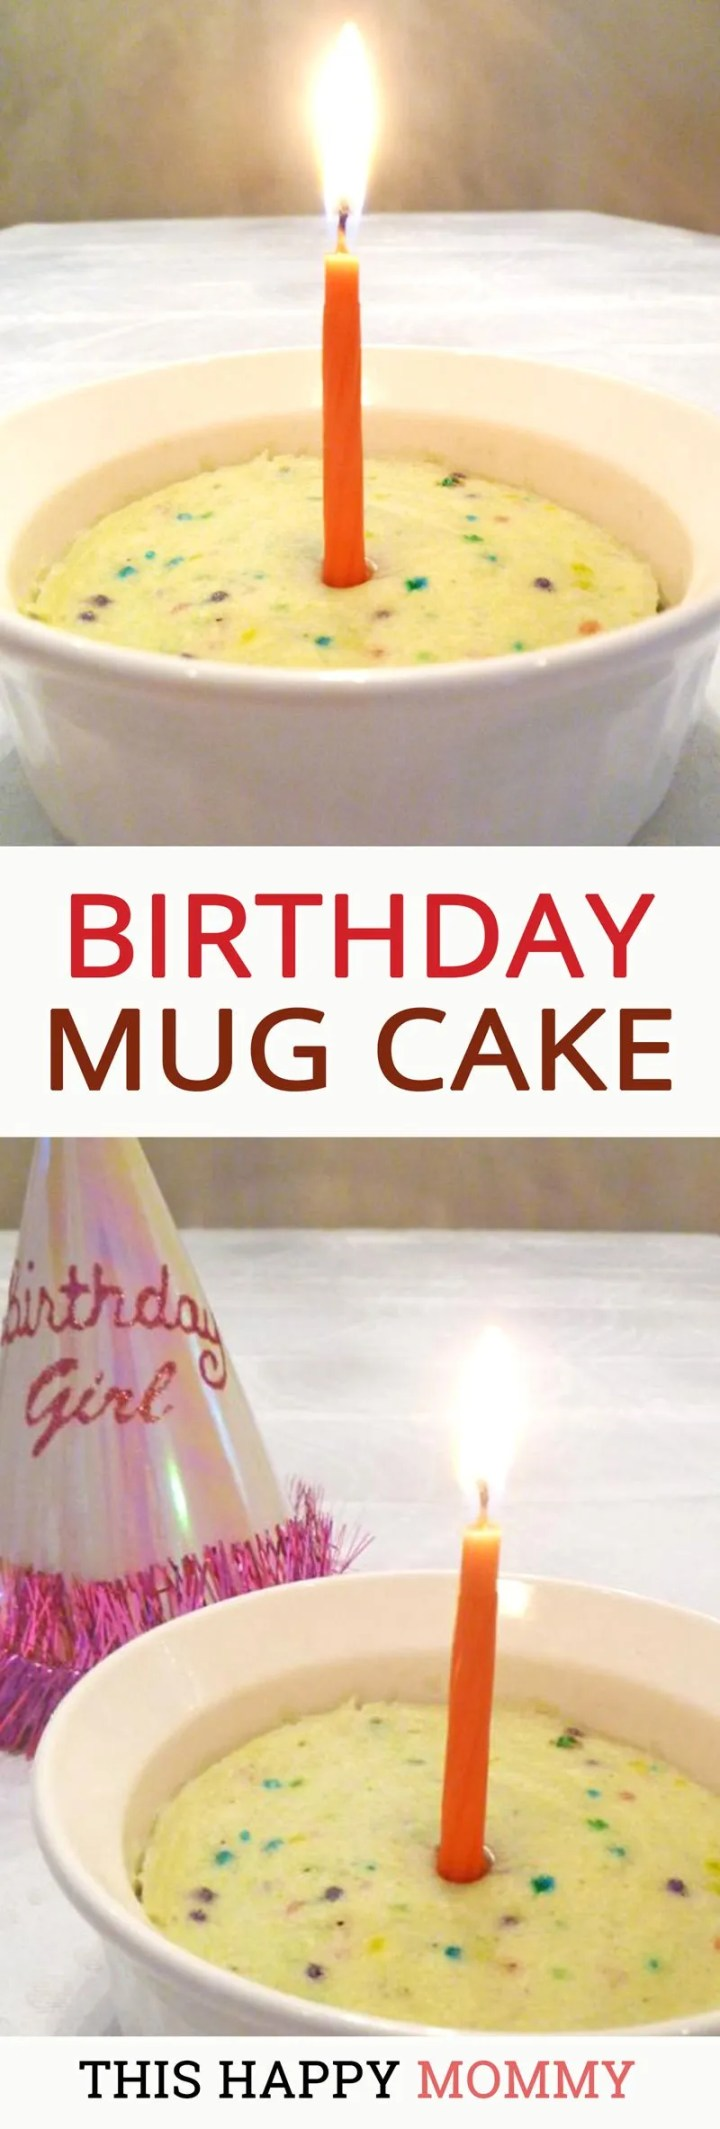 Quick and easy mini birthday cake. Enjoy all the flavors of birthday cake with this 5-minute treat. Birthday Mug Cake is a rich, velvety vanilla cake filled with yummy colorful sprinkles. Made without egg, butter, oil, or cream. | thishappymommy.com